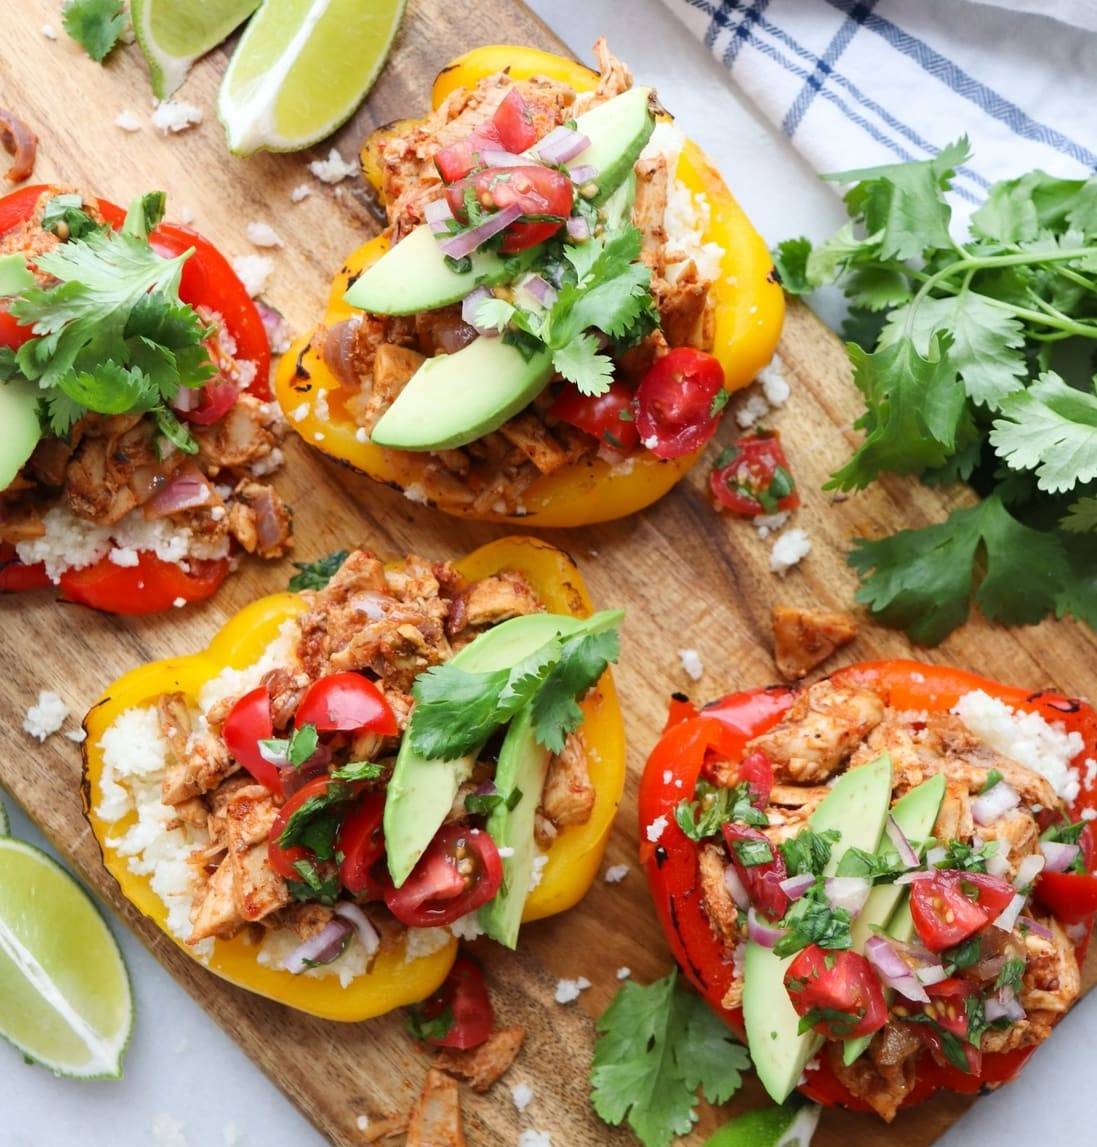 Whole30 Chicken Fajita Stuffed Peppers topped with fresh pico and avocado slices, finished dish